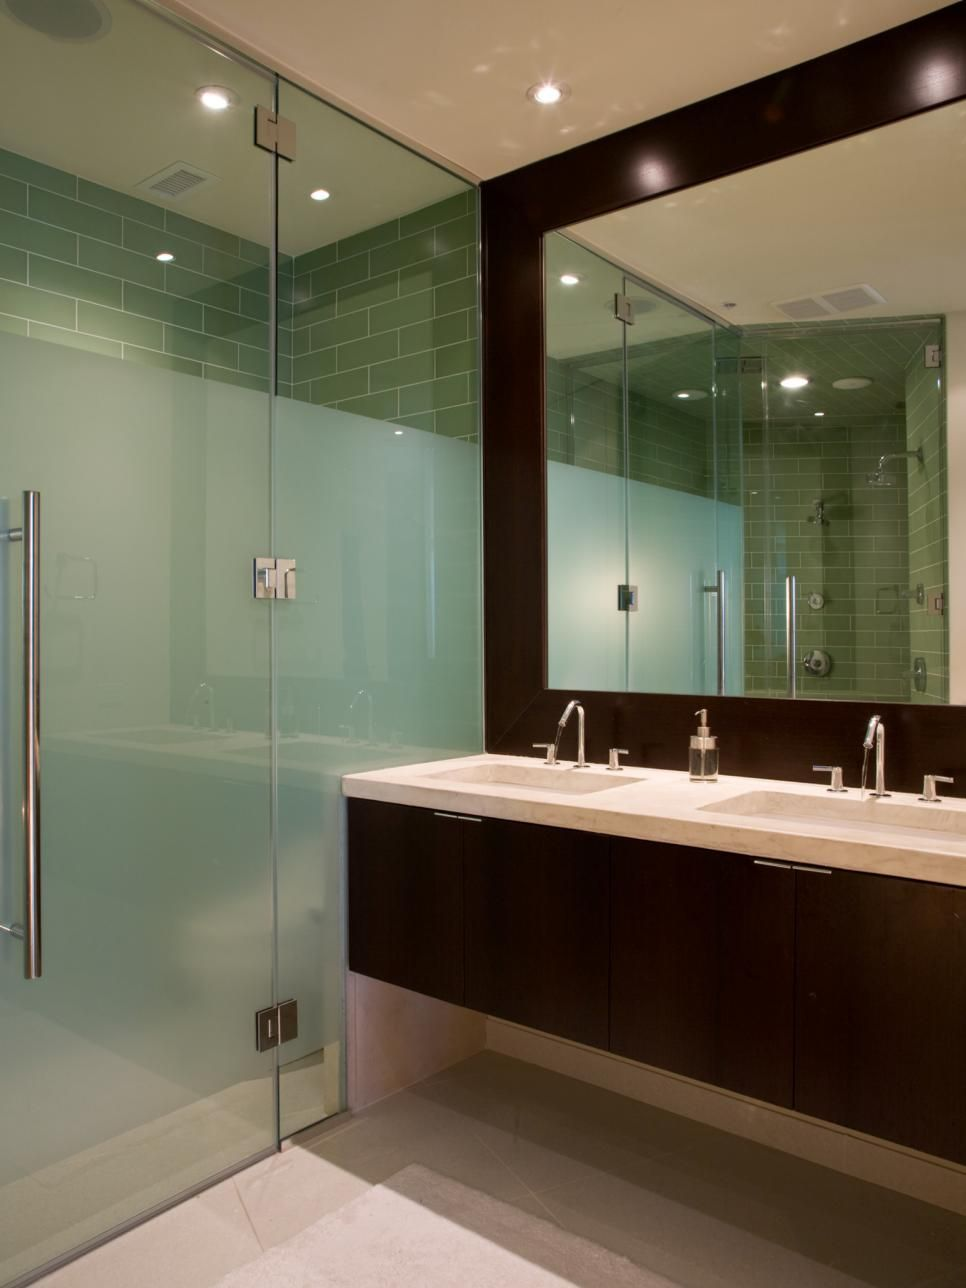 This Modern Bathroom Layout Abandons The Traditional